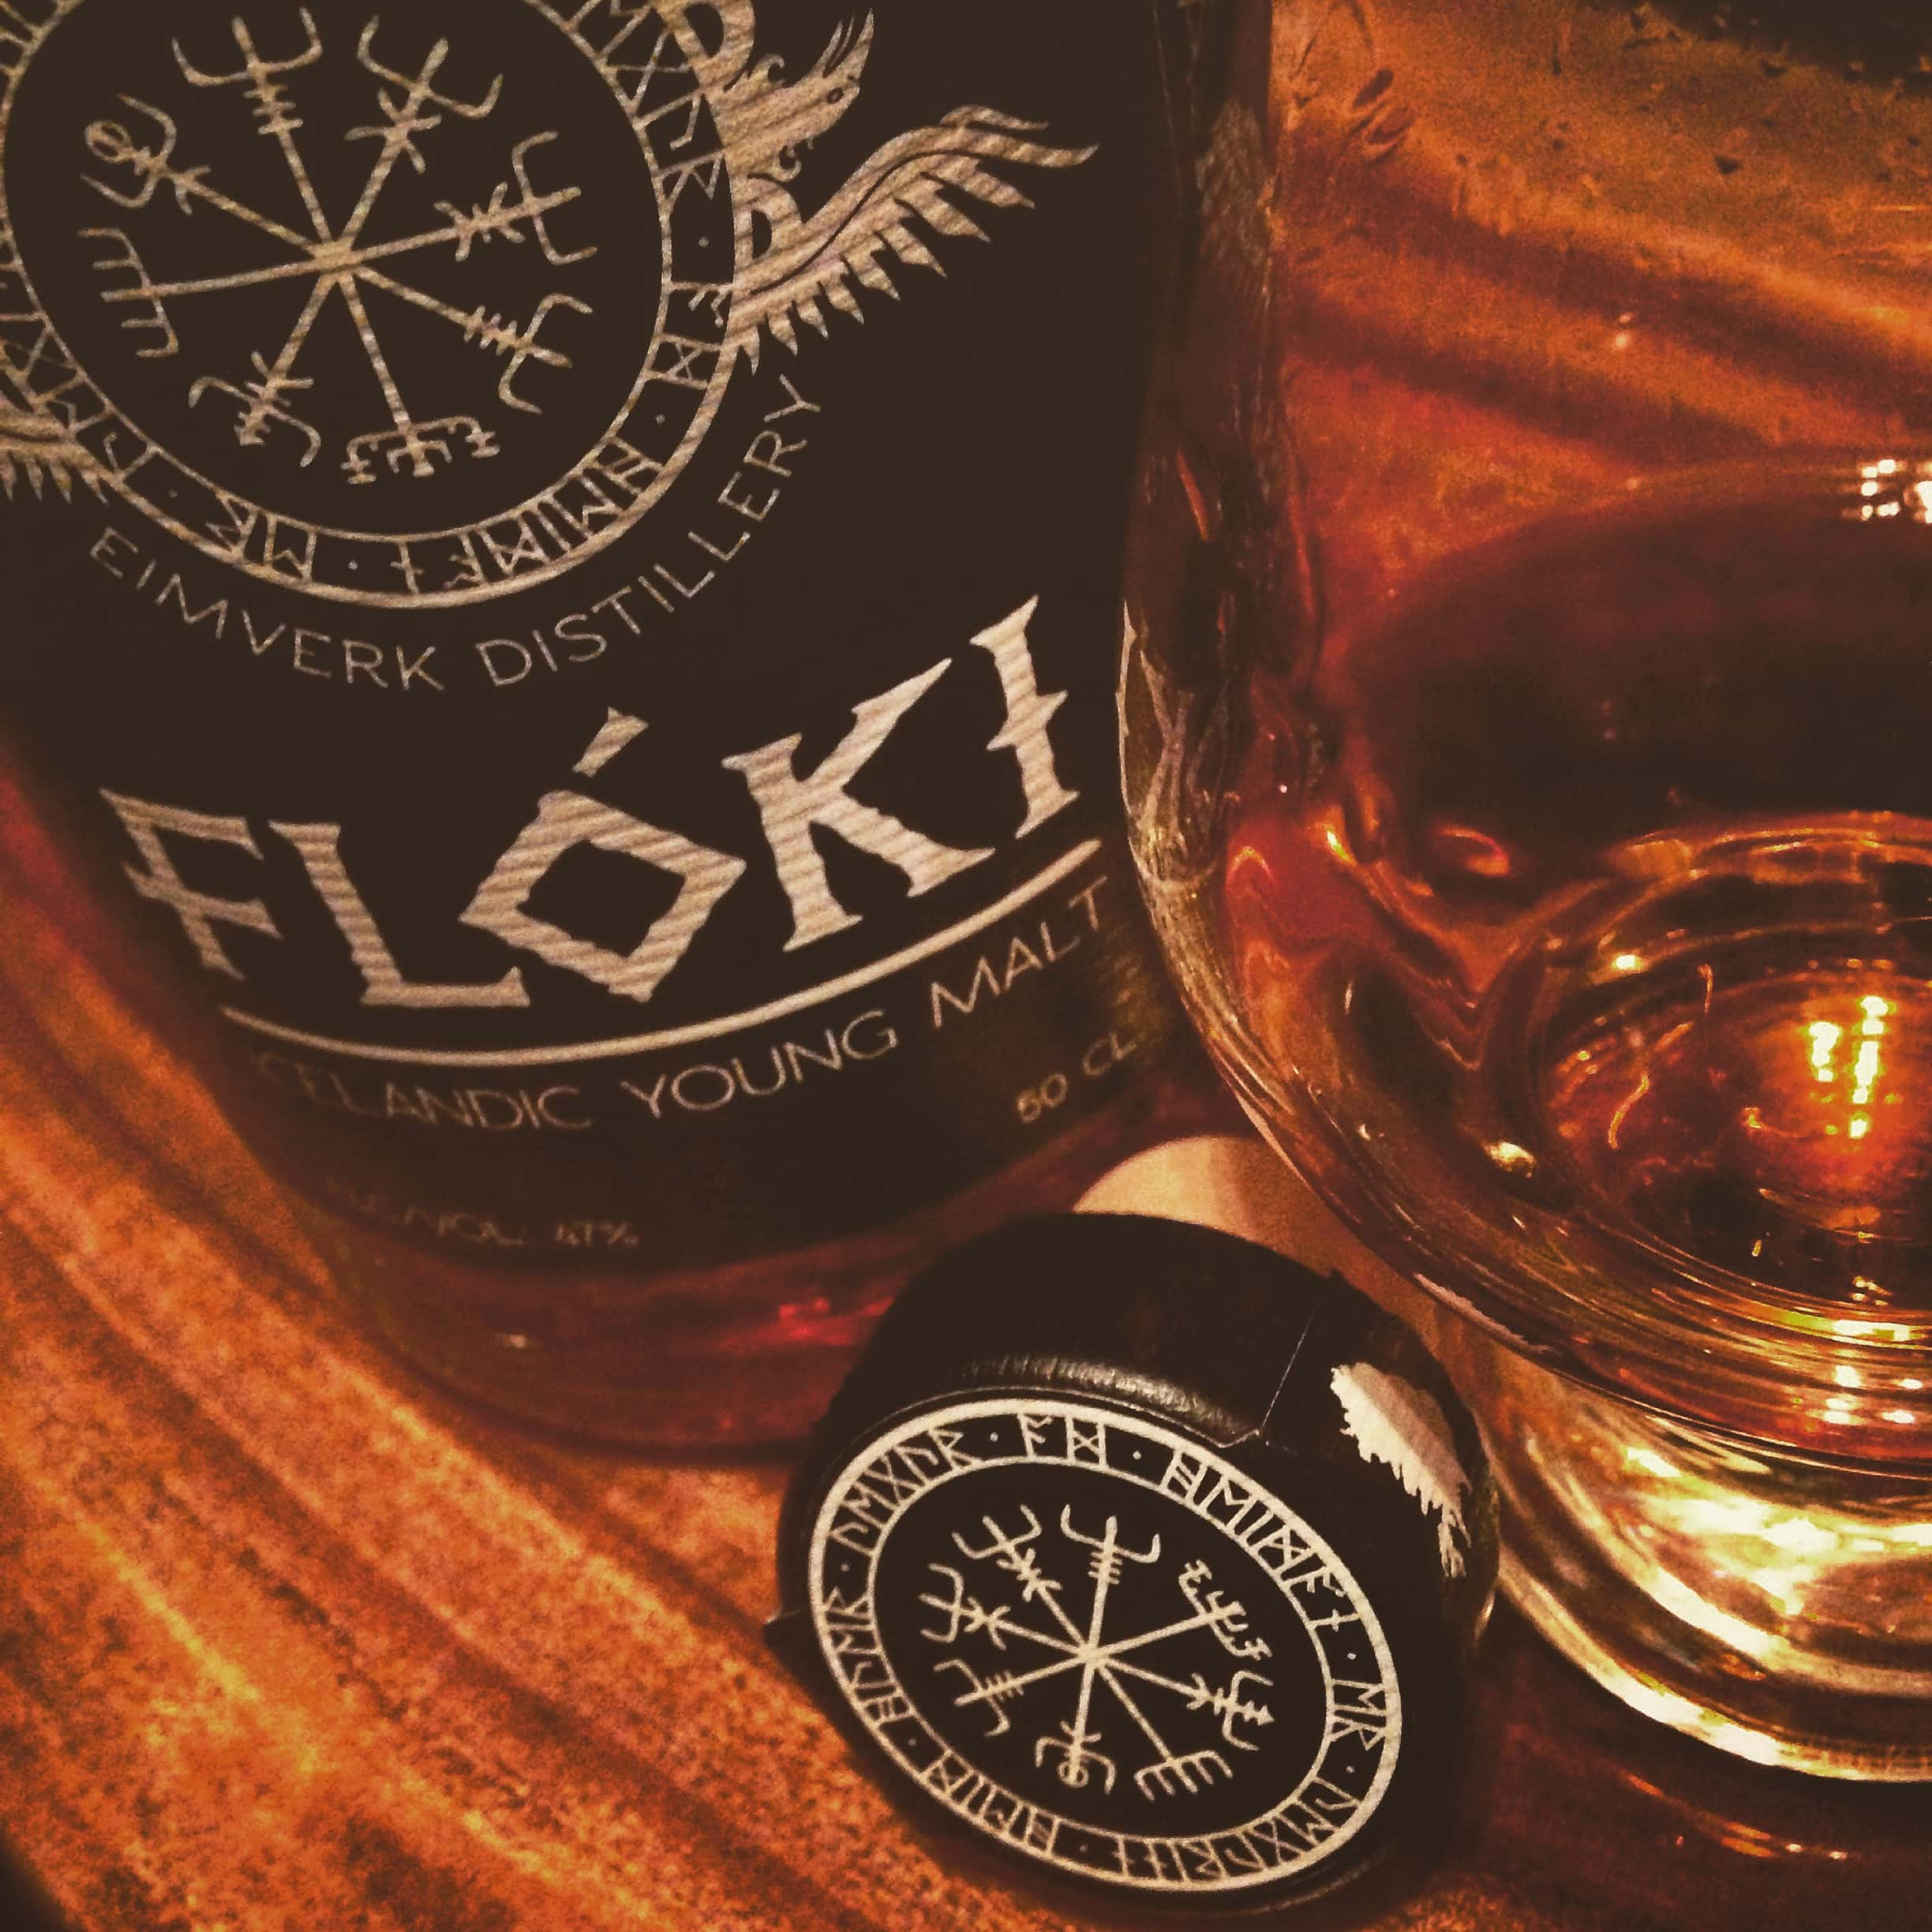 Floki Icelandic Young Malt Whisky